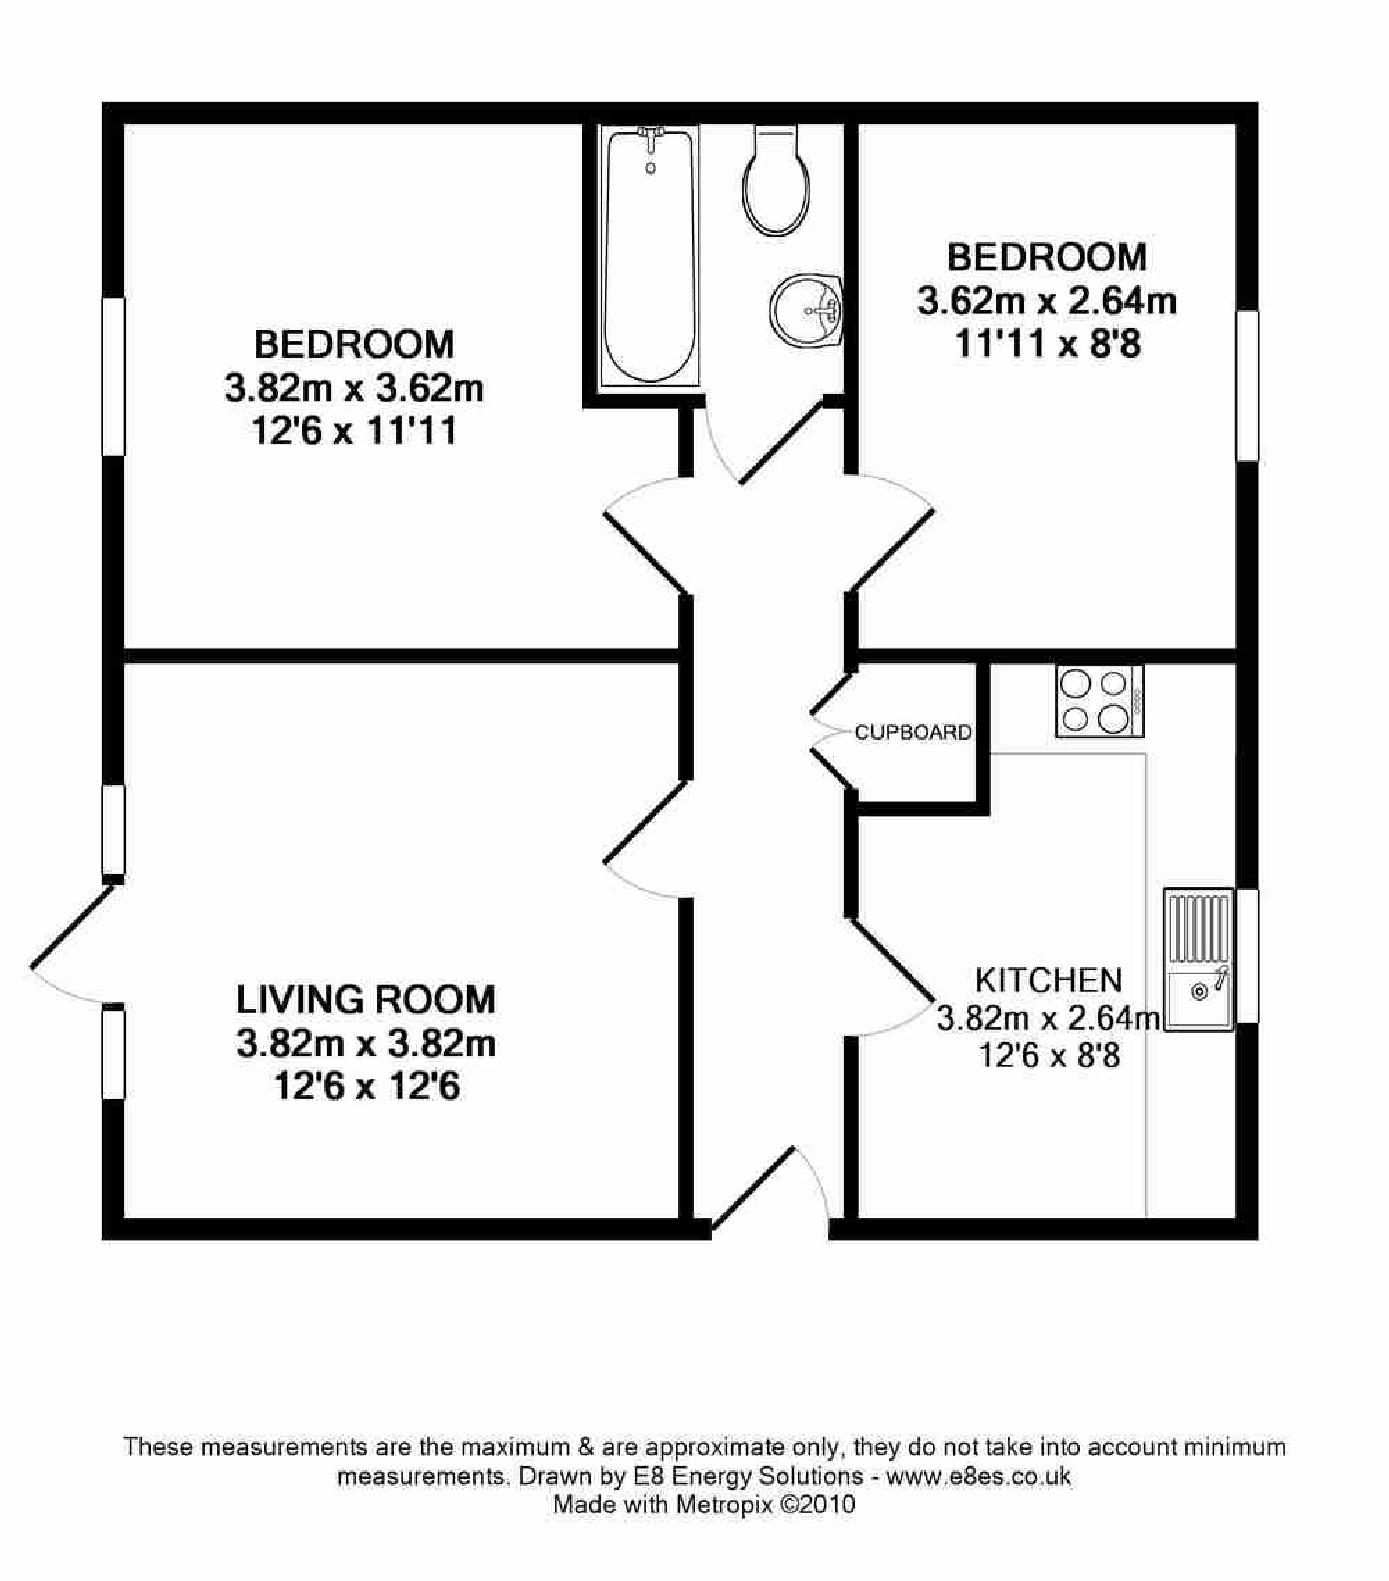 Marina way abingdon ox14 ref 6288 abingdon for One bedroom flat floor plan